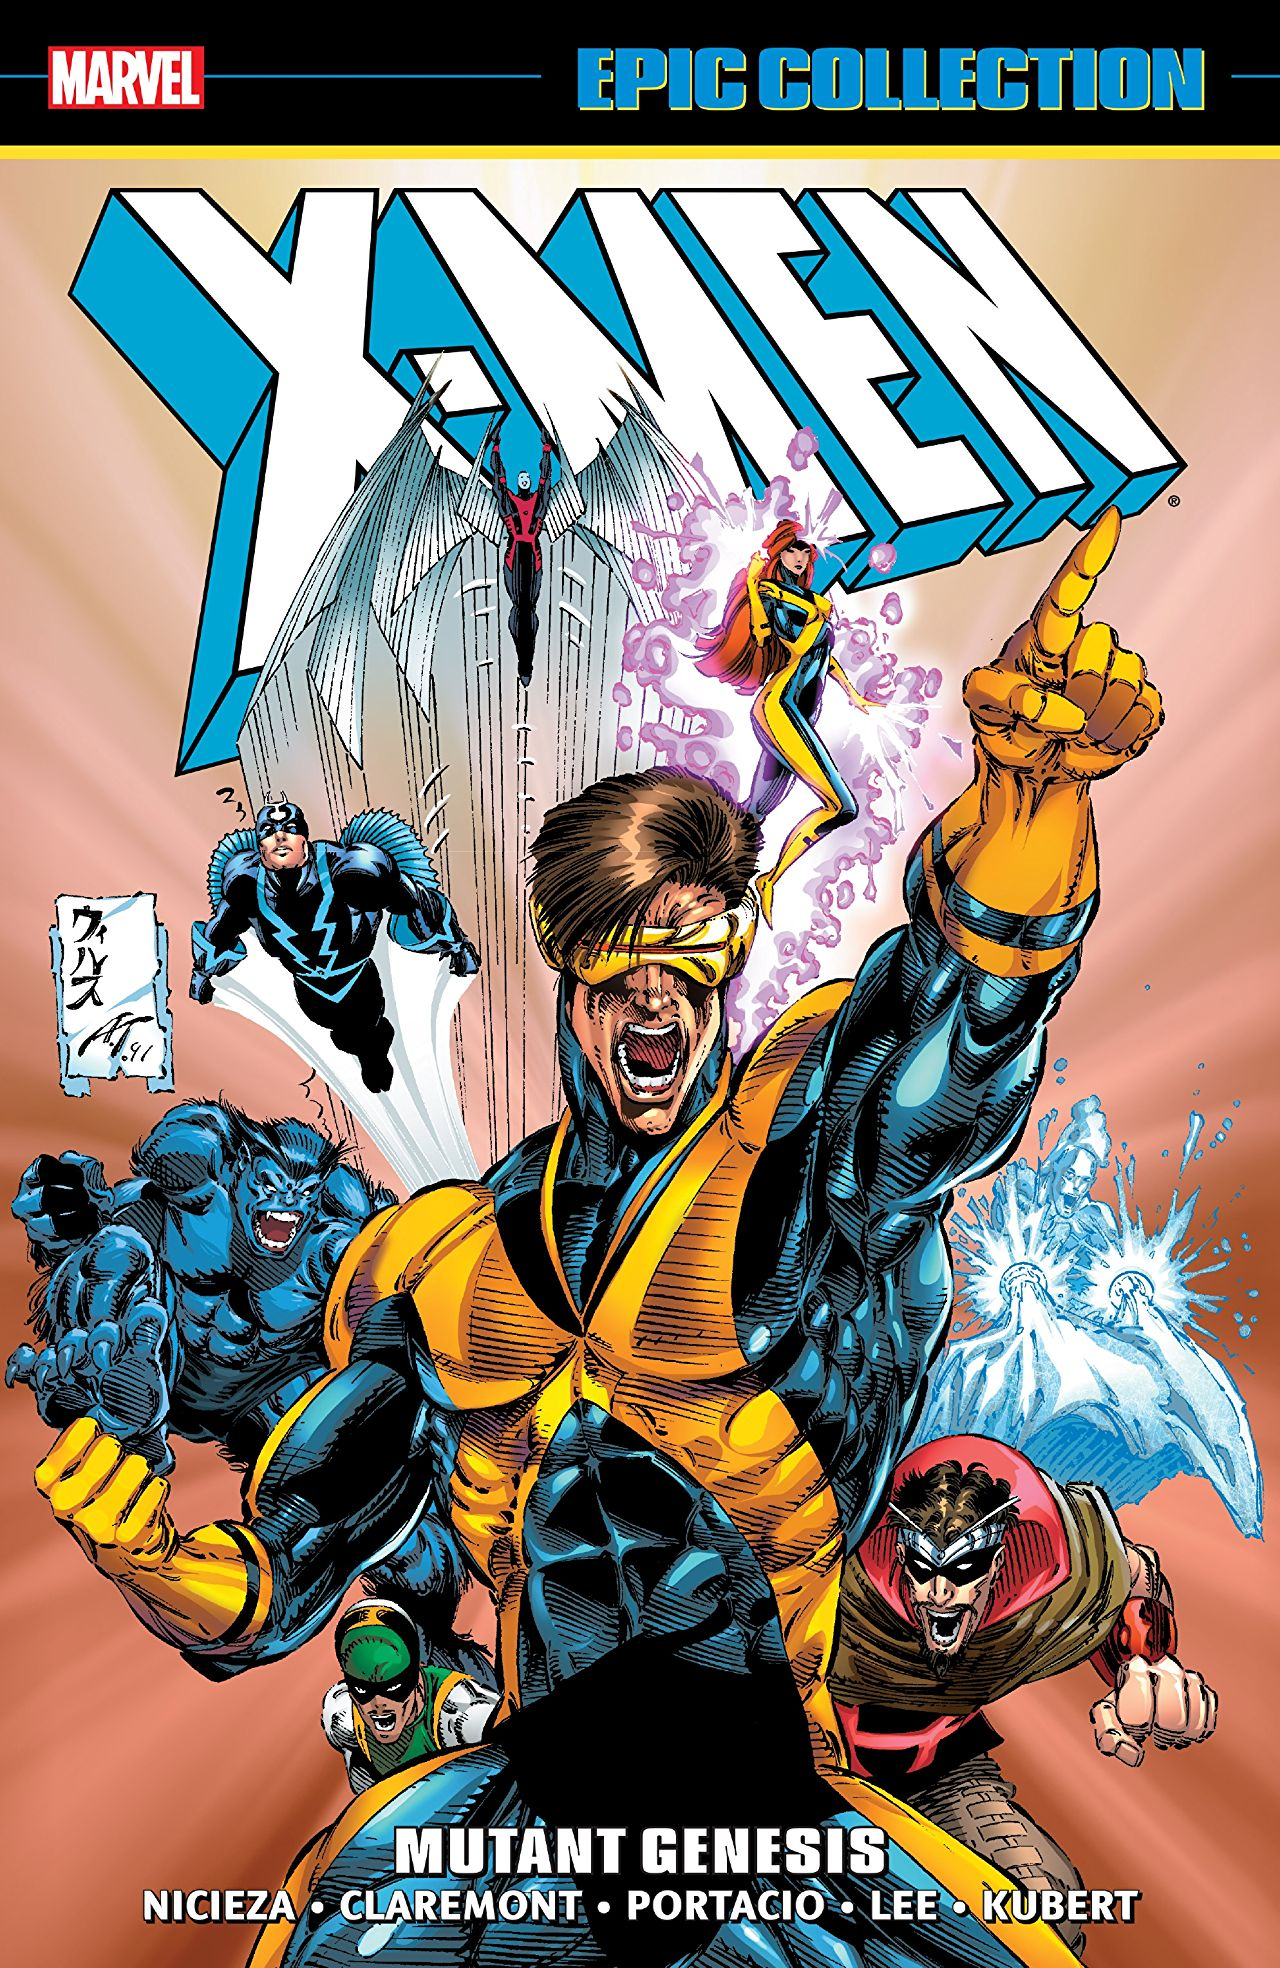 'X-Men Epic Collection: Mutant Genesis' is painfully 90s, casual racism and all